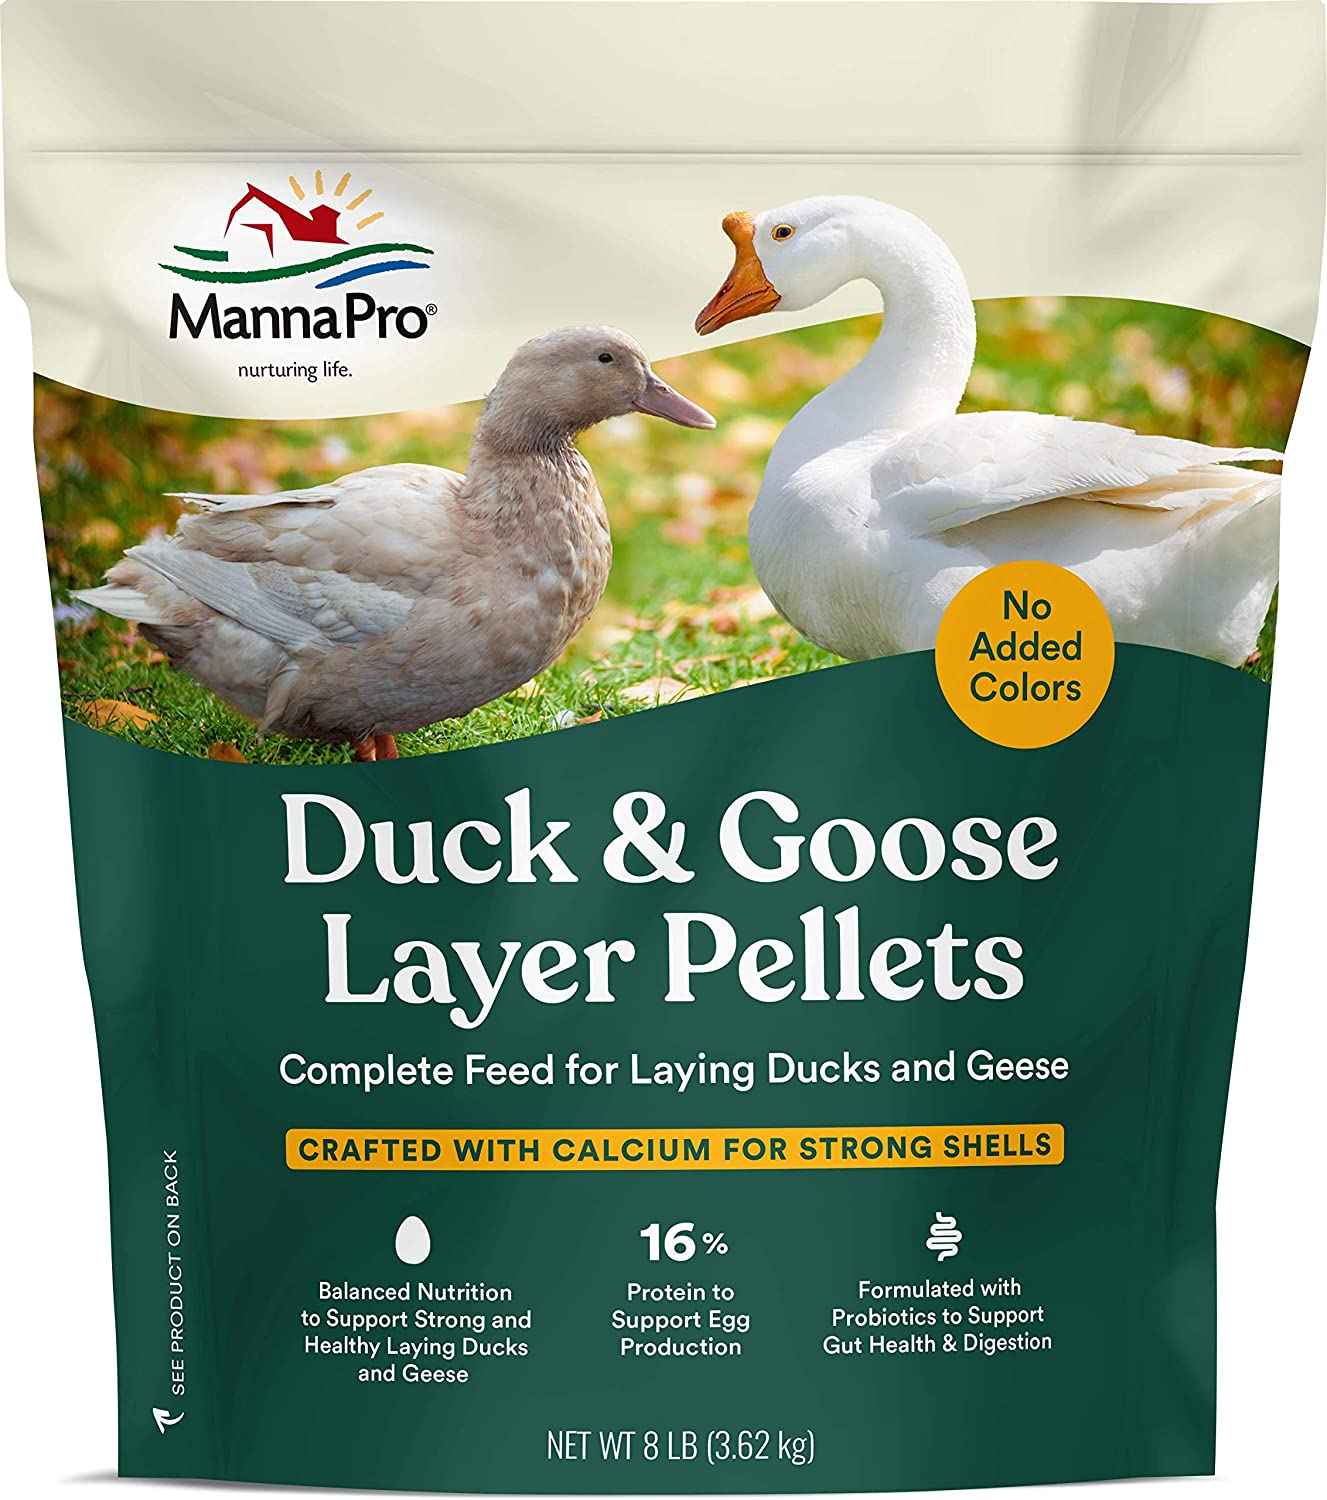 Manna Pro Duck Layer Pellet High Protein for Increased Egg Production Formulated with Probiotics to Support Healthy Digestion